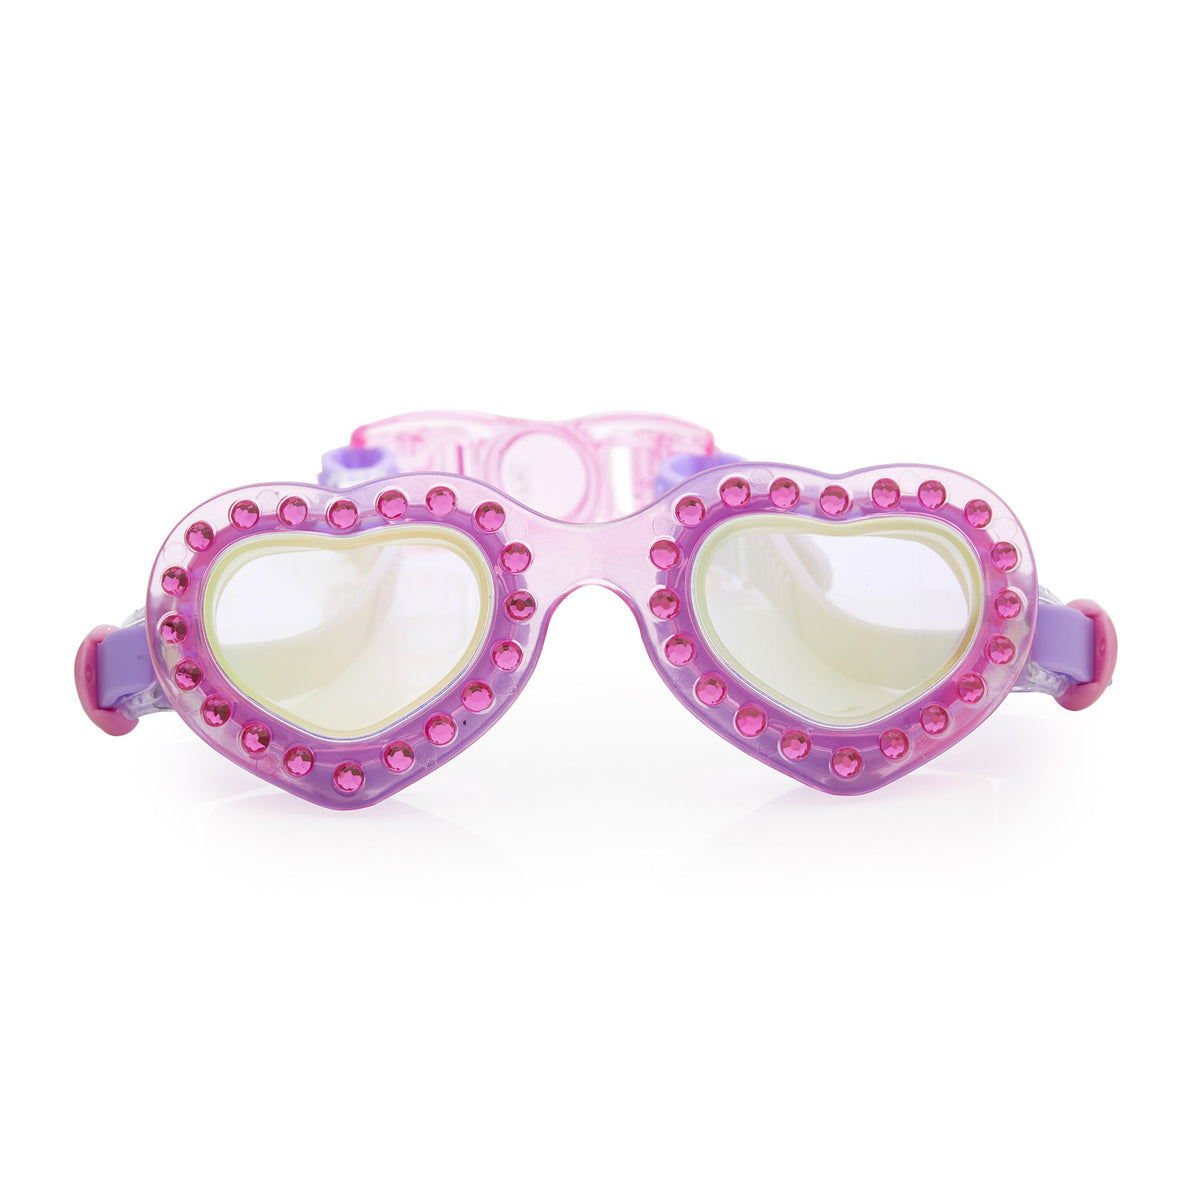 Bling2o Heart Throb Swim Goggles, First Crush Fuchsia